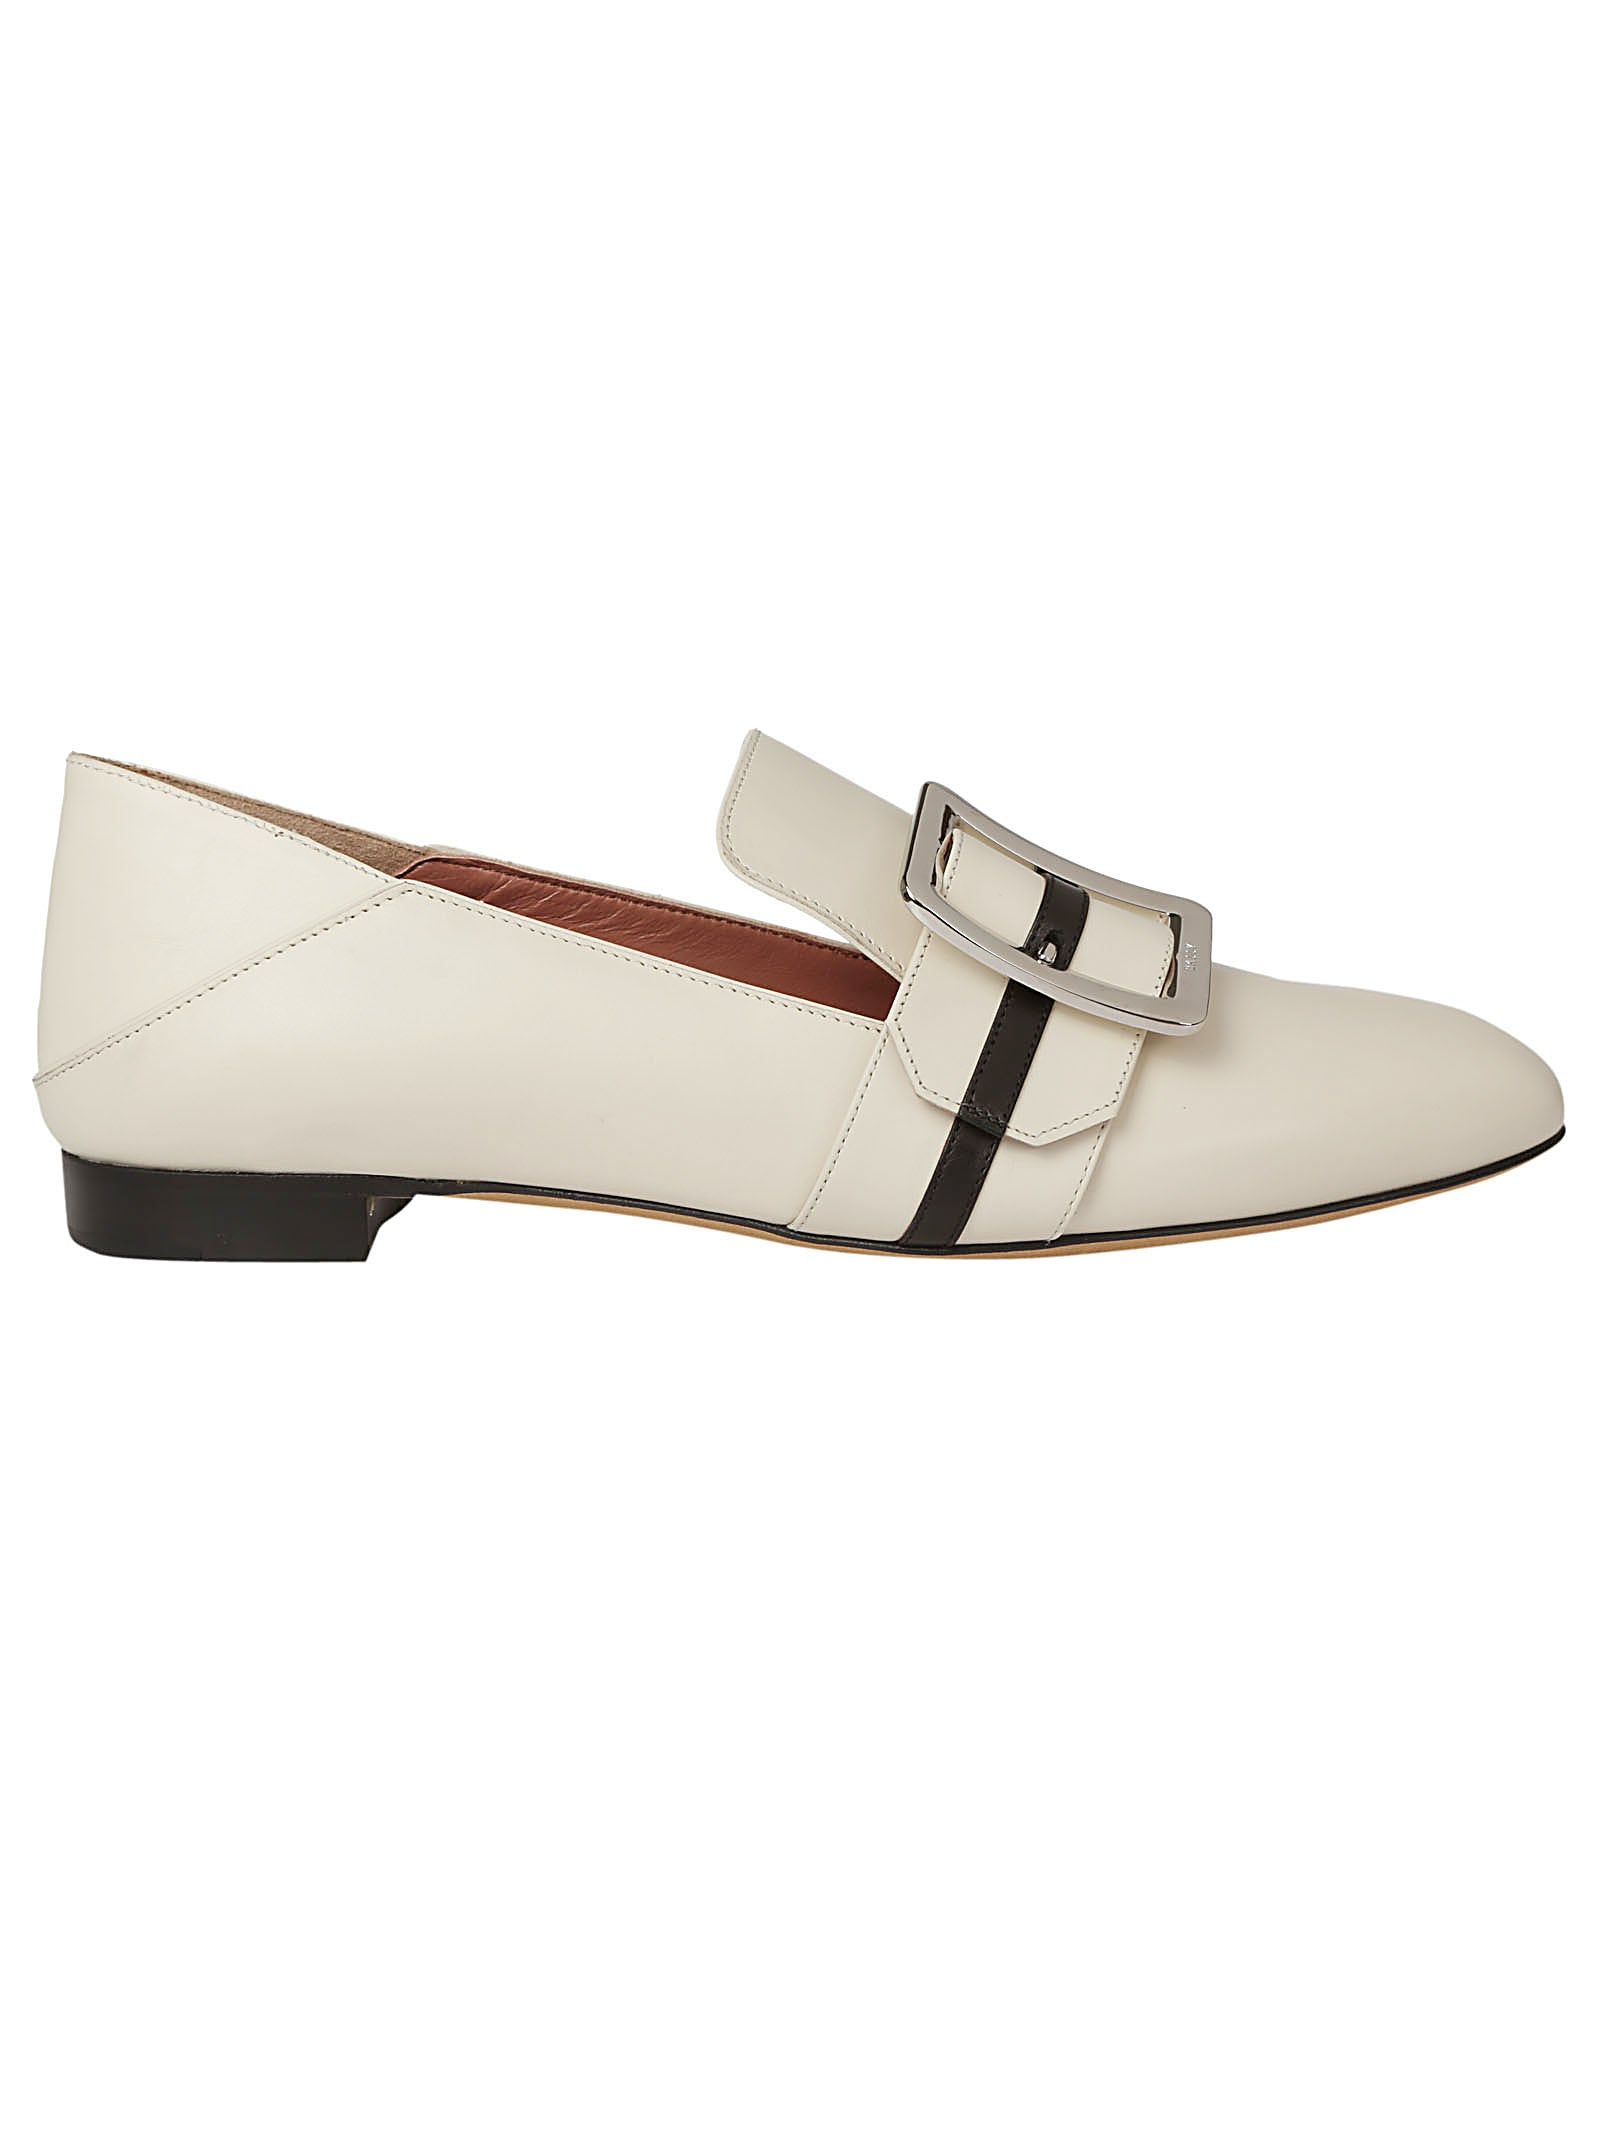 Bally Janelle Leather Loafers, White